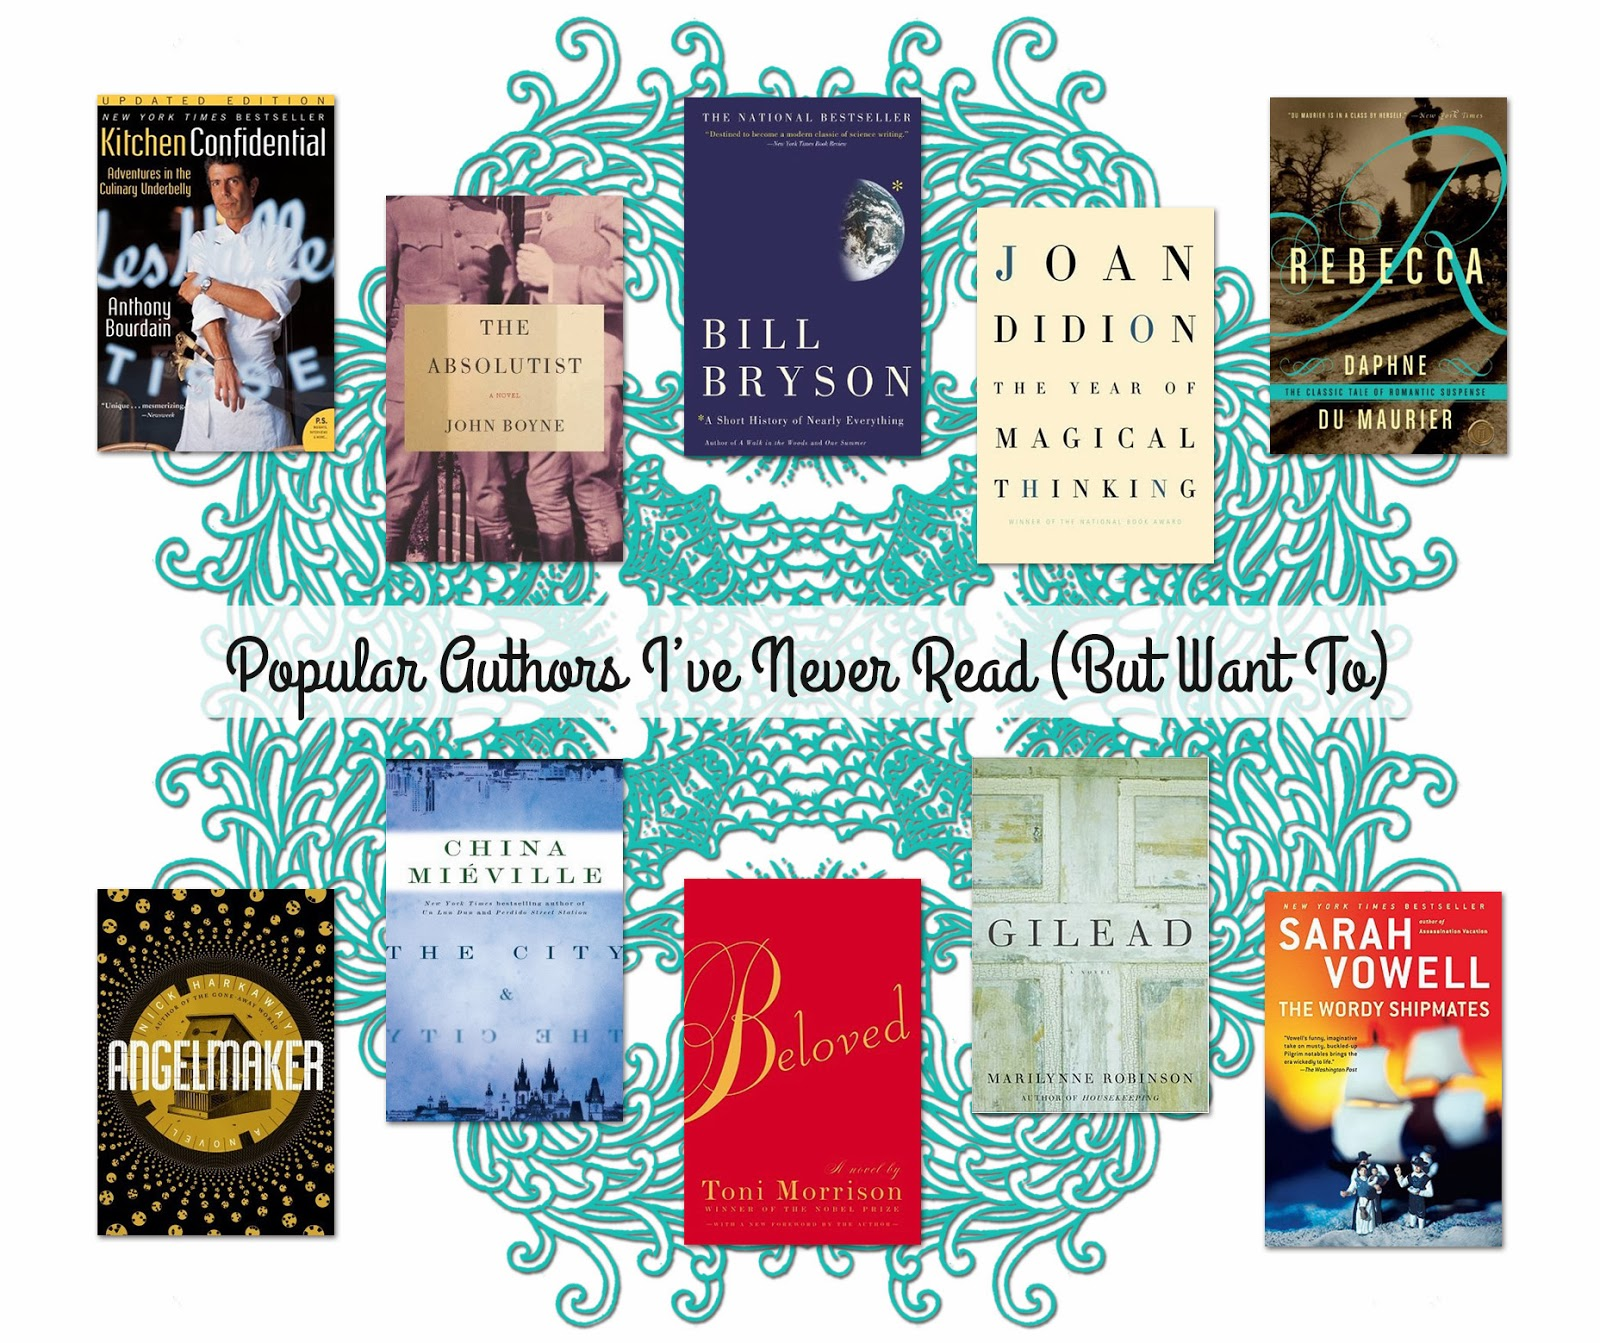 popular authors i've never read but want to